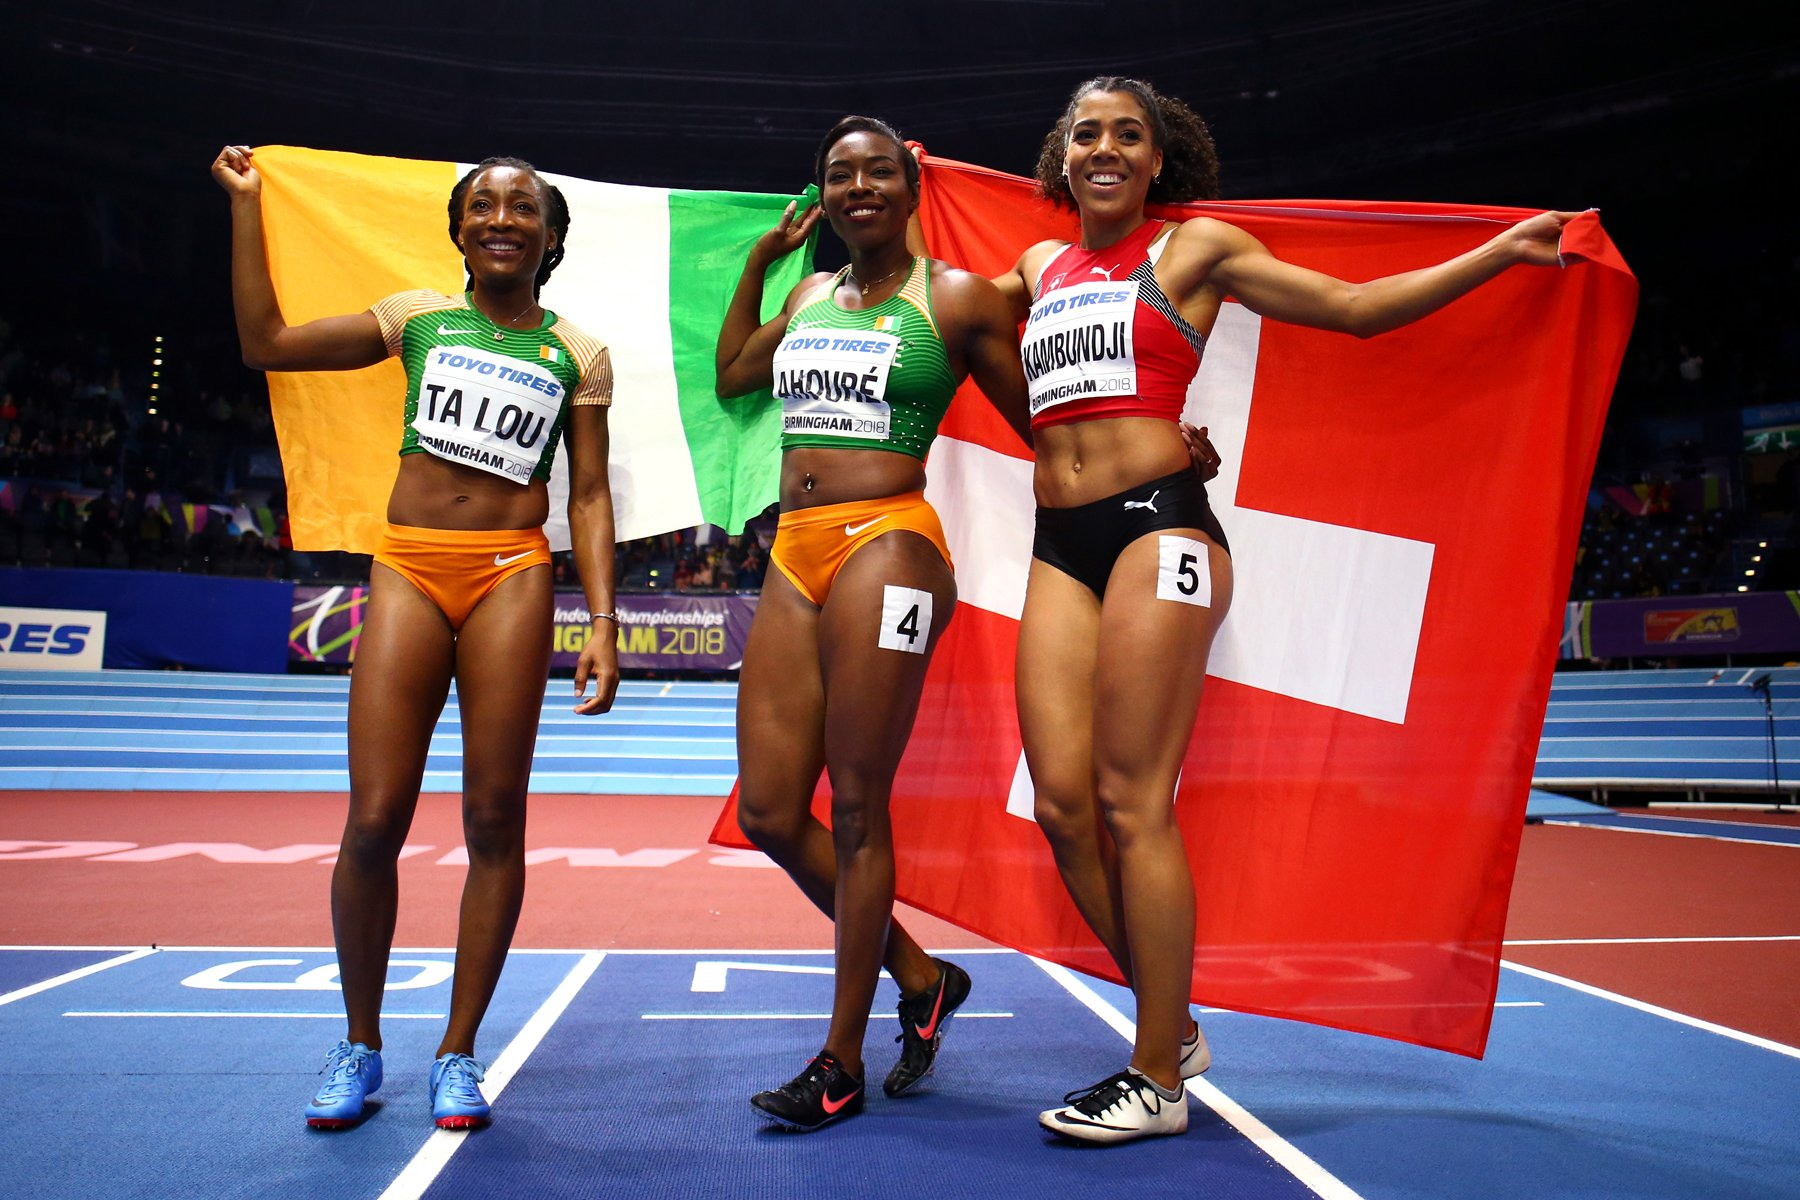 Murielle Ahoure (C) Marie-Josee Ta Lou (L) of Cote D'Ivoire and Mujinga Kambundji of Switzerland celebrates after the 60 Metres Womens Final during the IAAF World Indoor Championships on Day Two at Arena Birmingham on March 2, 2018 in Birmingham, England. Photo by Michael Steele/Getty Images for IAAF